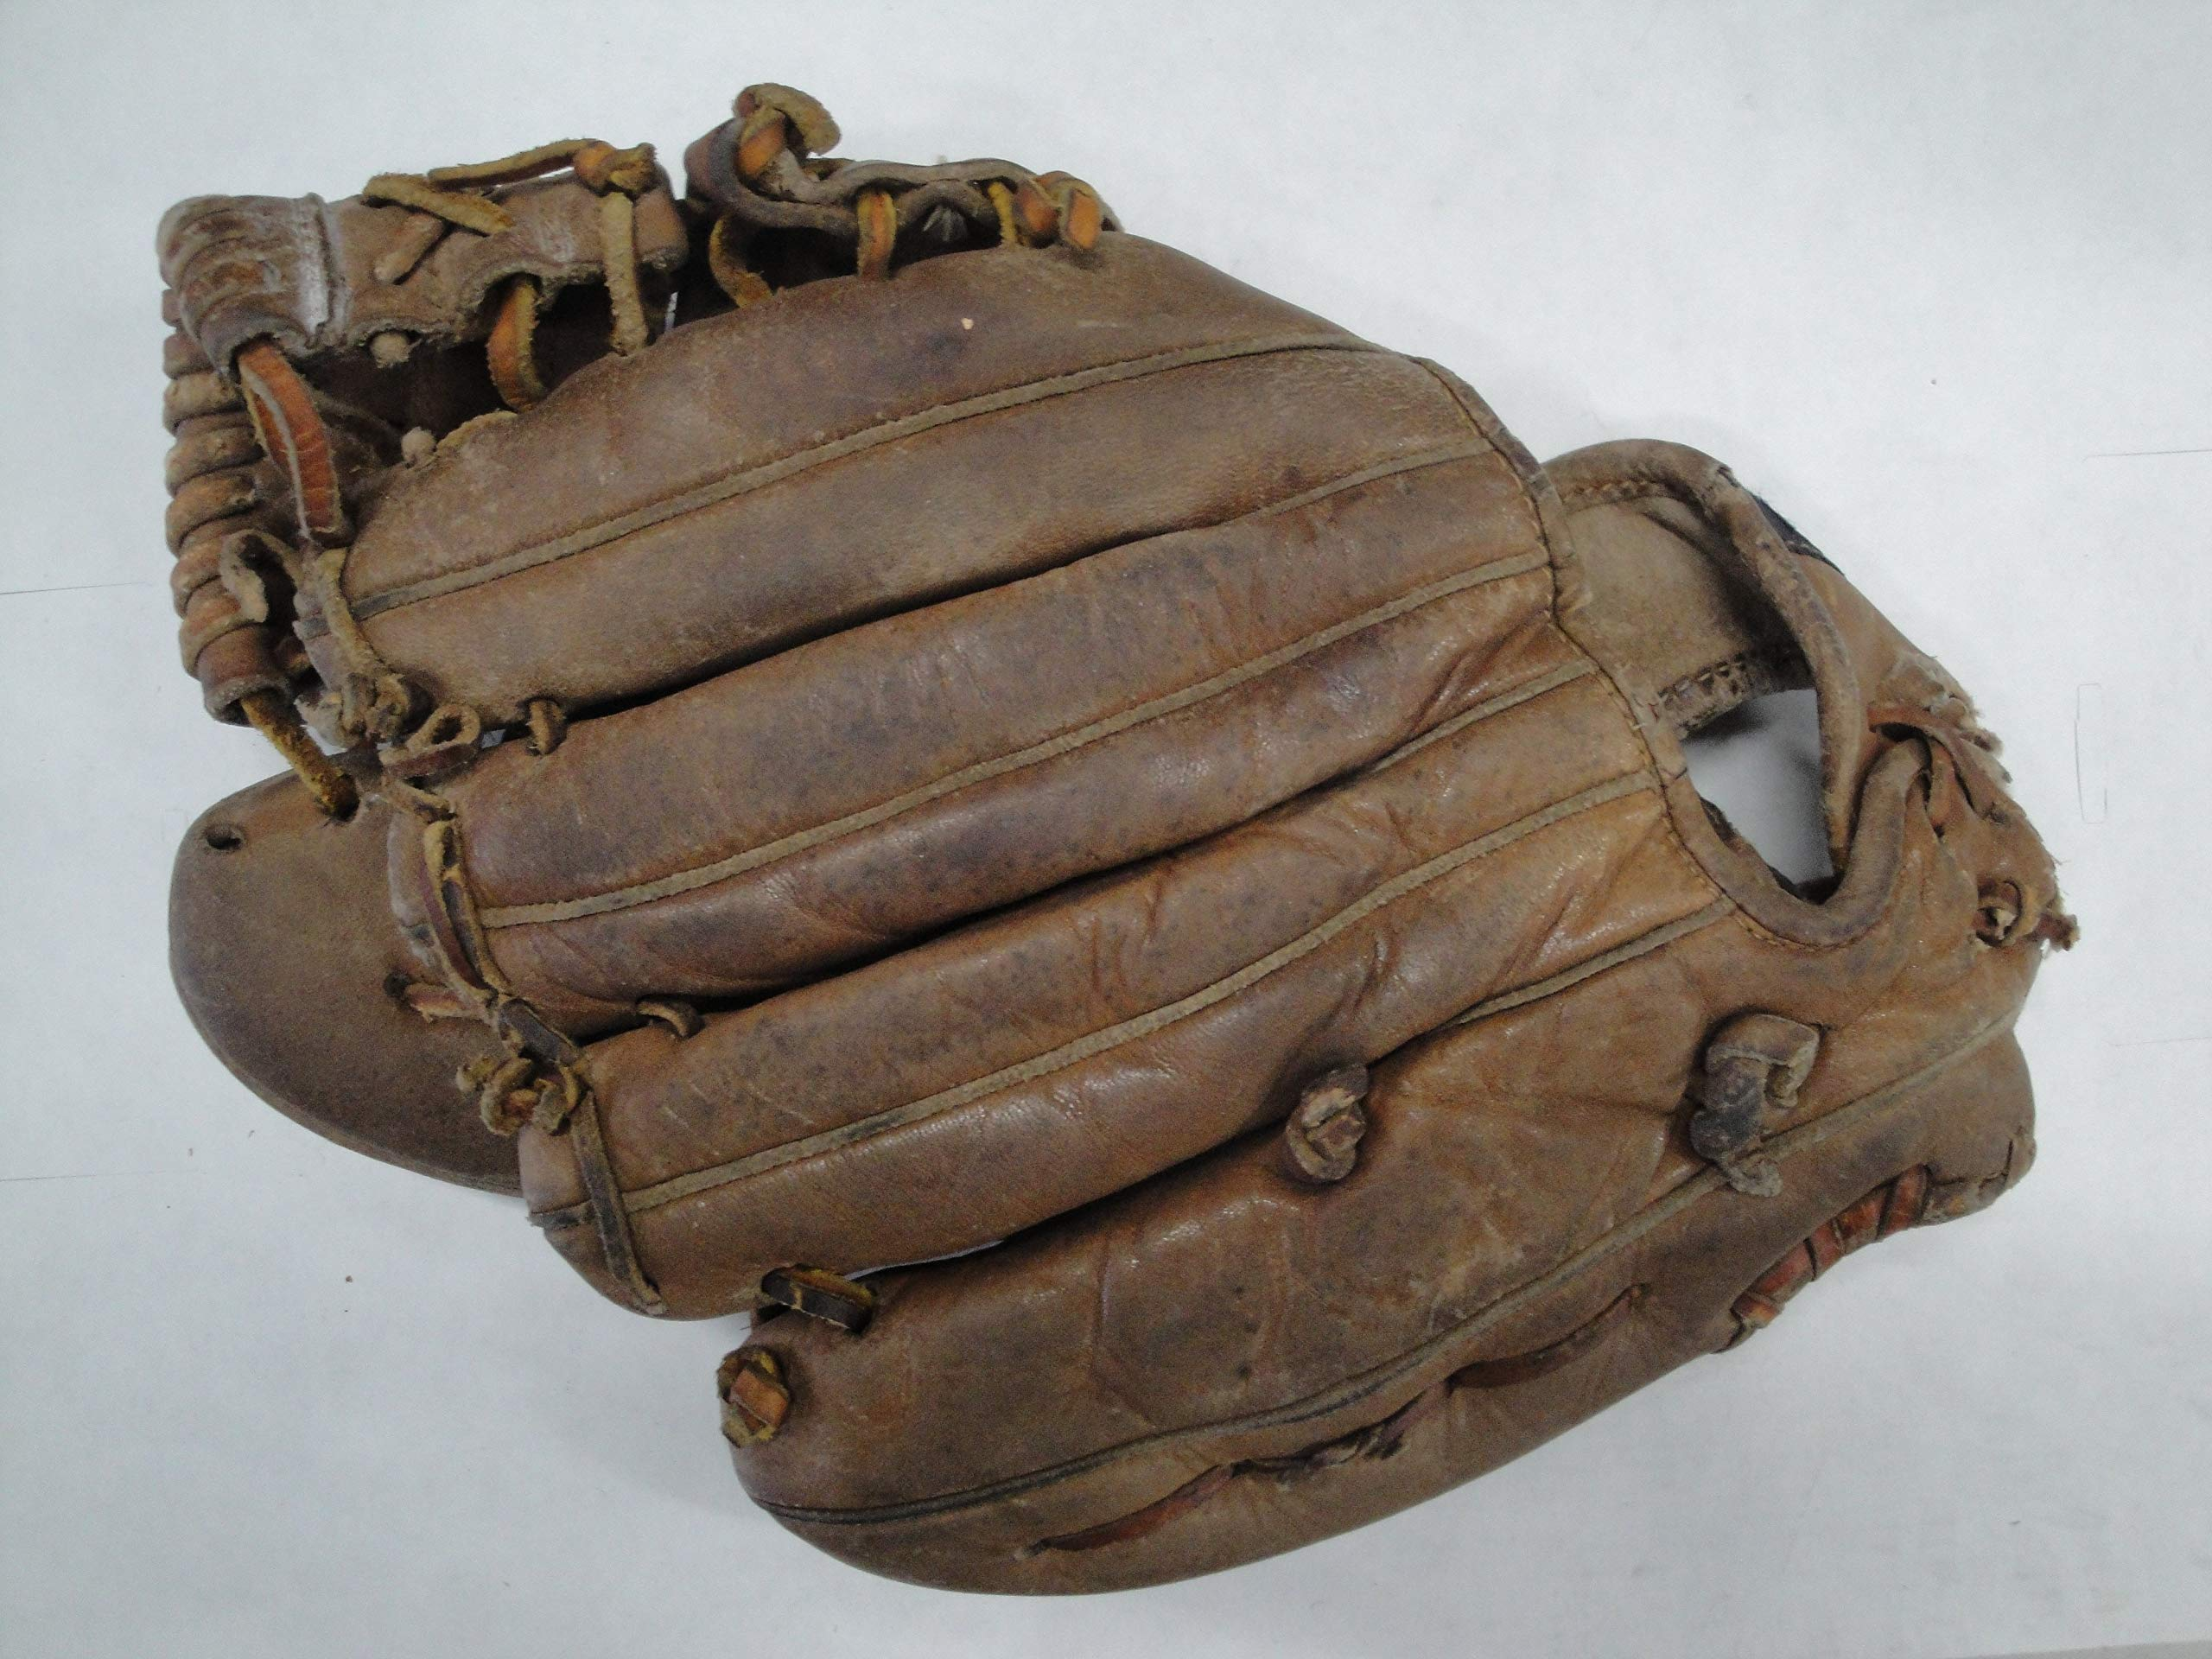 Maury Wills Hand Signed Autograph Signed Vintage Baseball Glove '62 NL MVP 2X GG